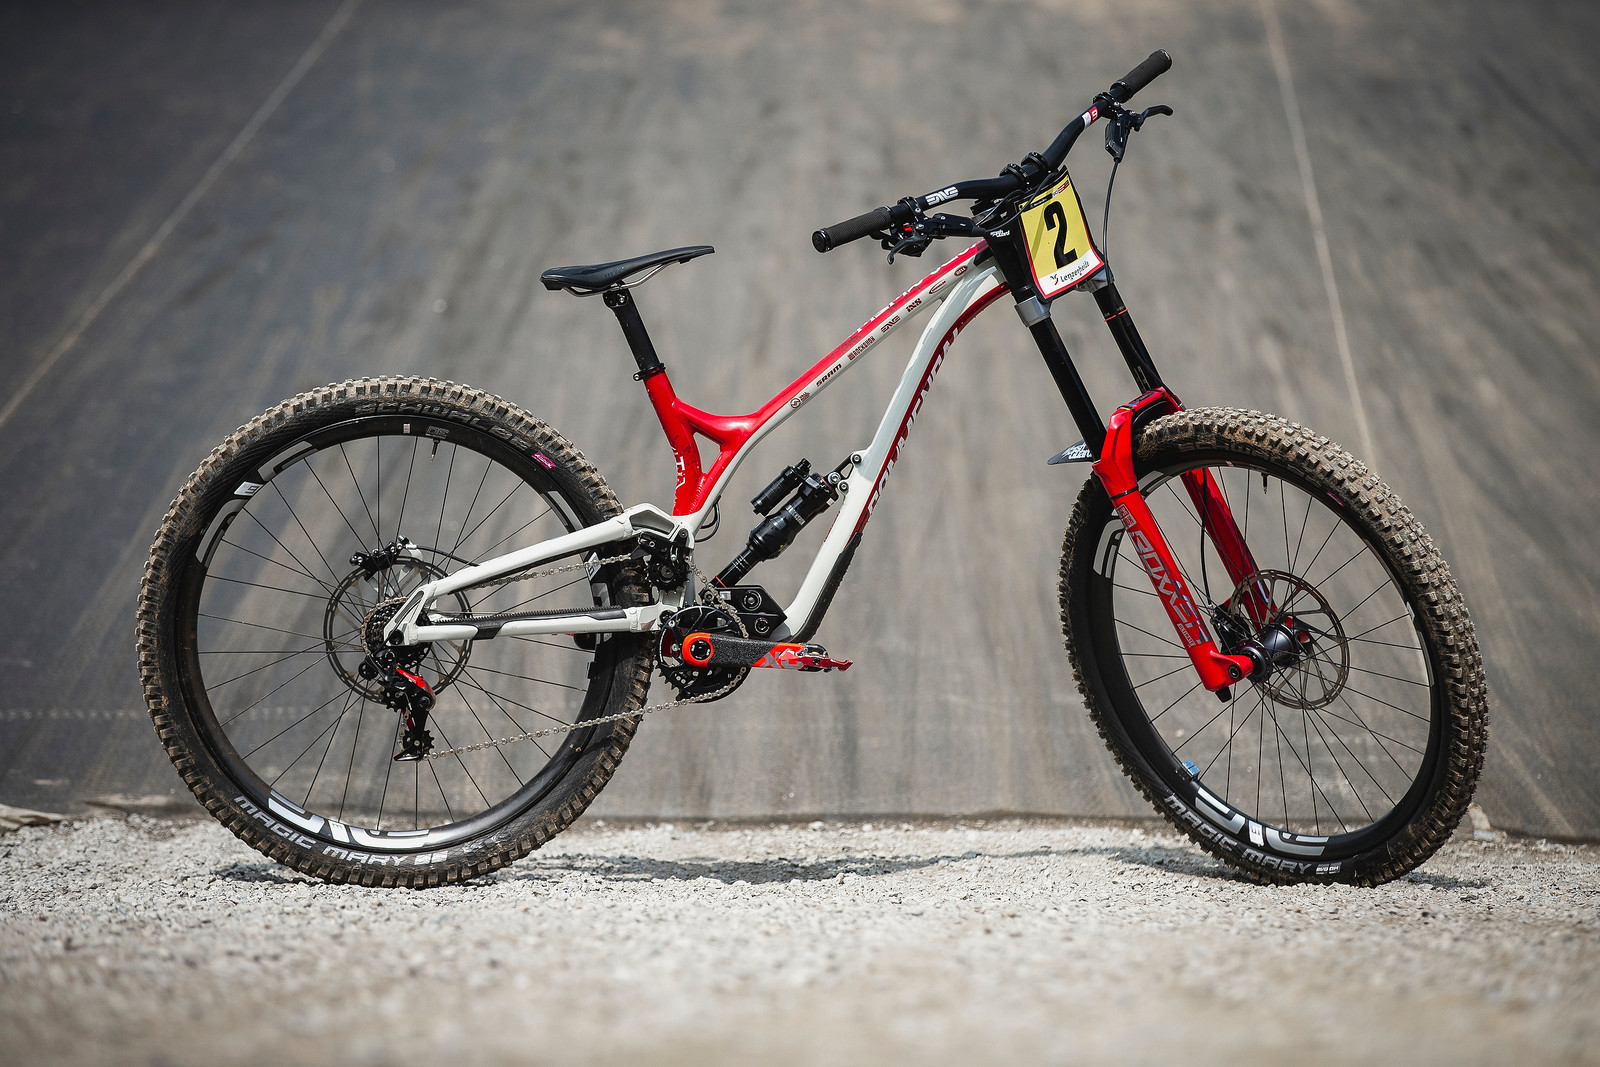 WINNING BIKE - Amaury Pierron's Commencal Supreme DH from Lenzerheide - WINNING BIKE - Amaury Pierron's Commencal Supreme DH - Mountain Biking Pictures - Vital MTB